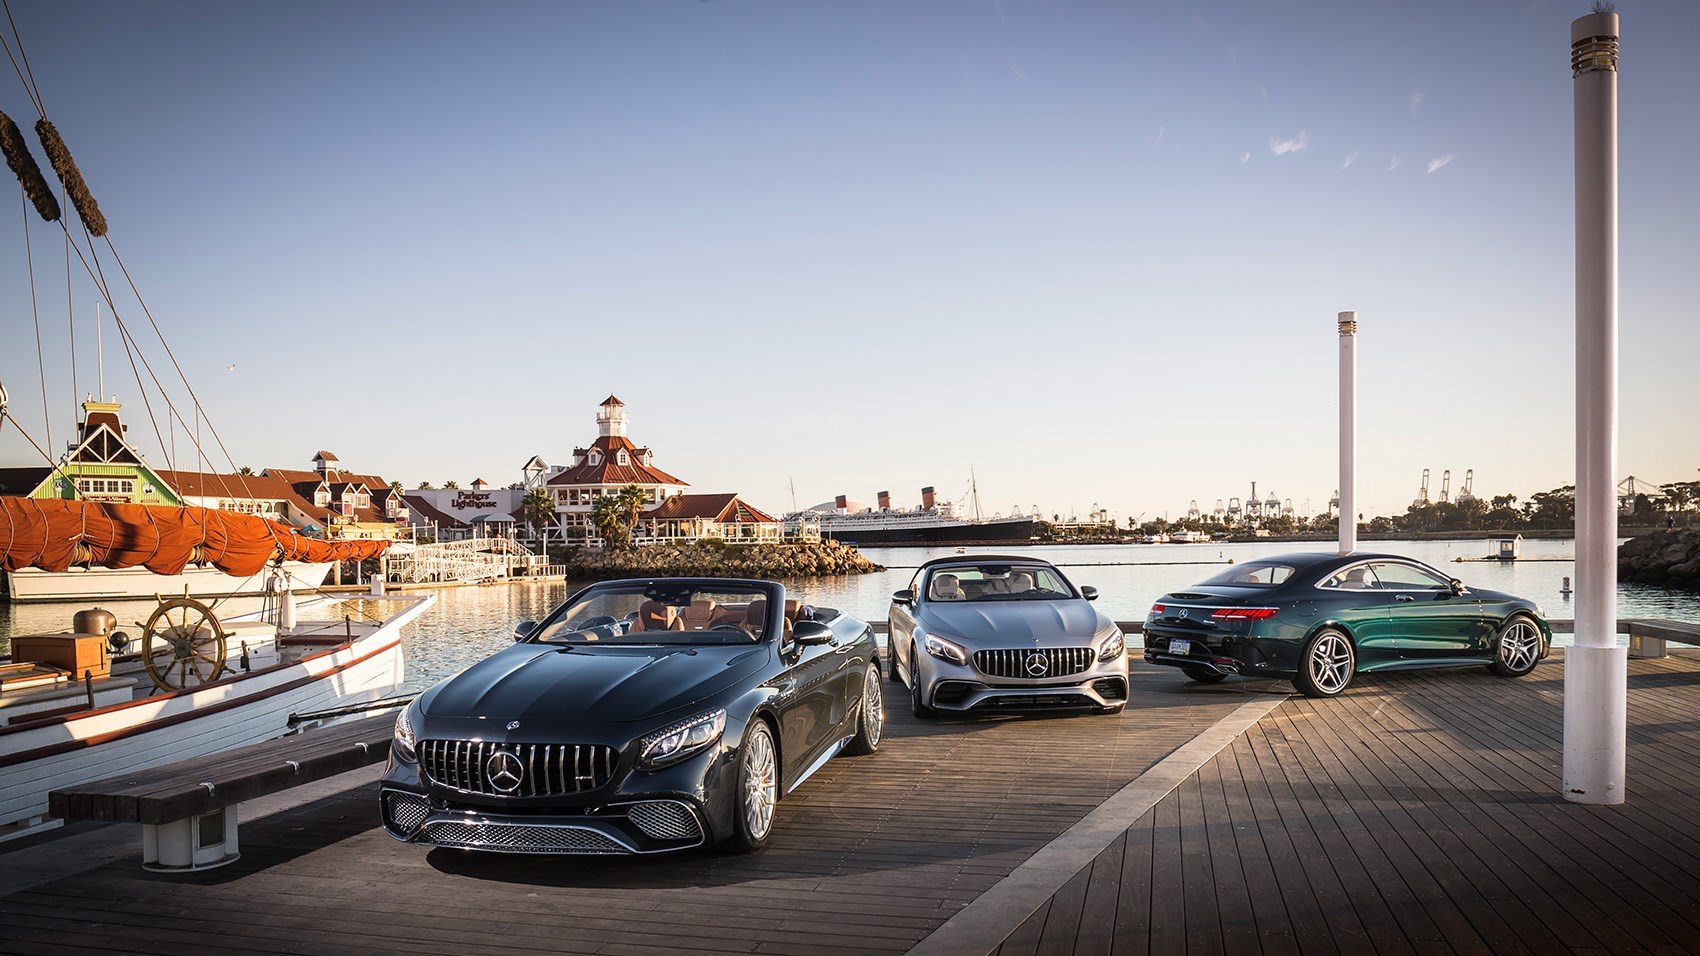 The new 2018 Mercedes S-class Coupe and Cabriolet twins. We review them all